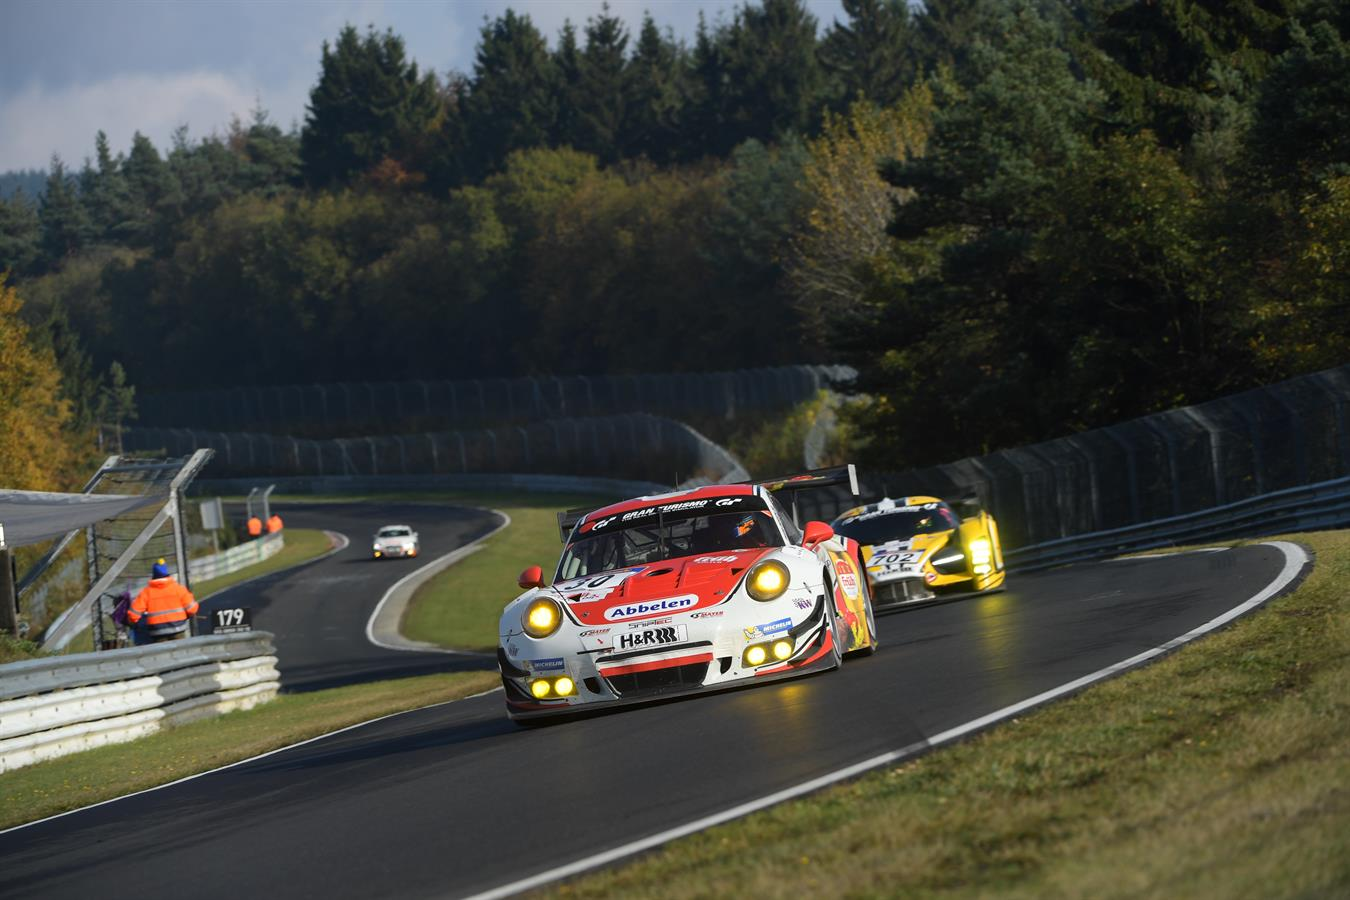 VLN 2016: Race 10 (October 22th)